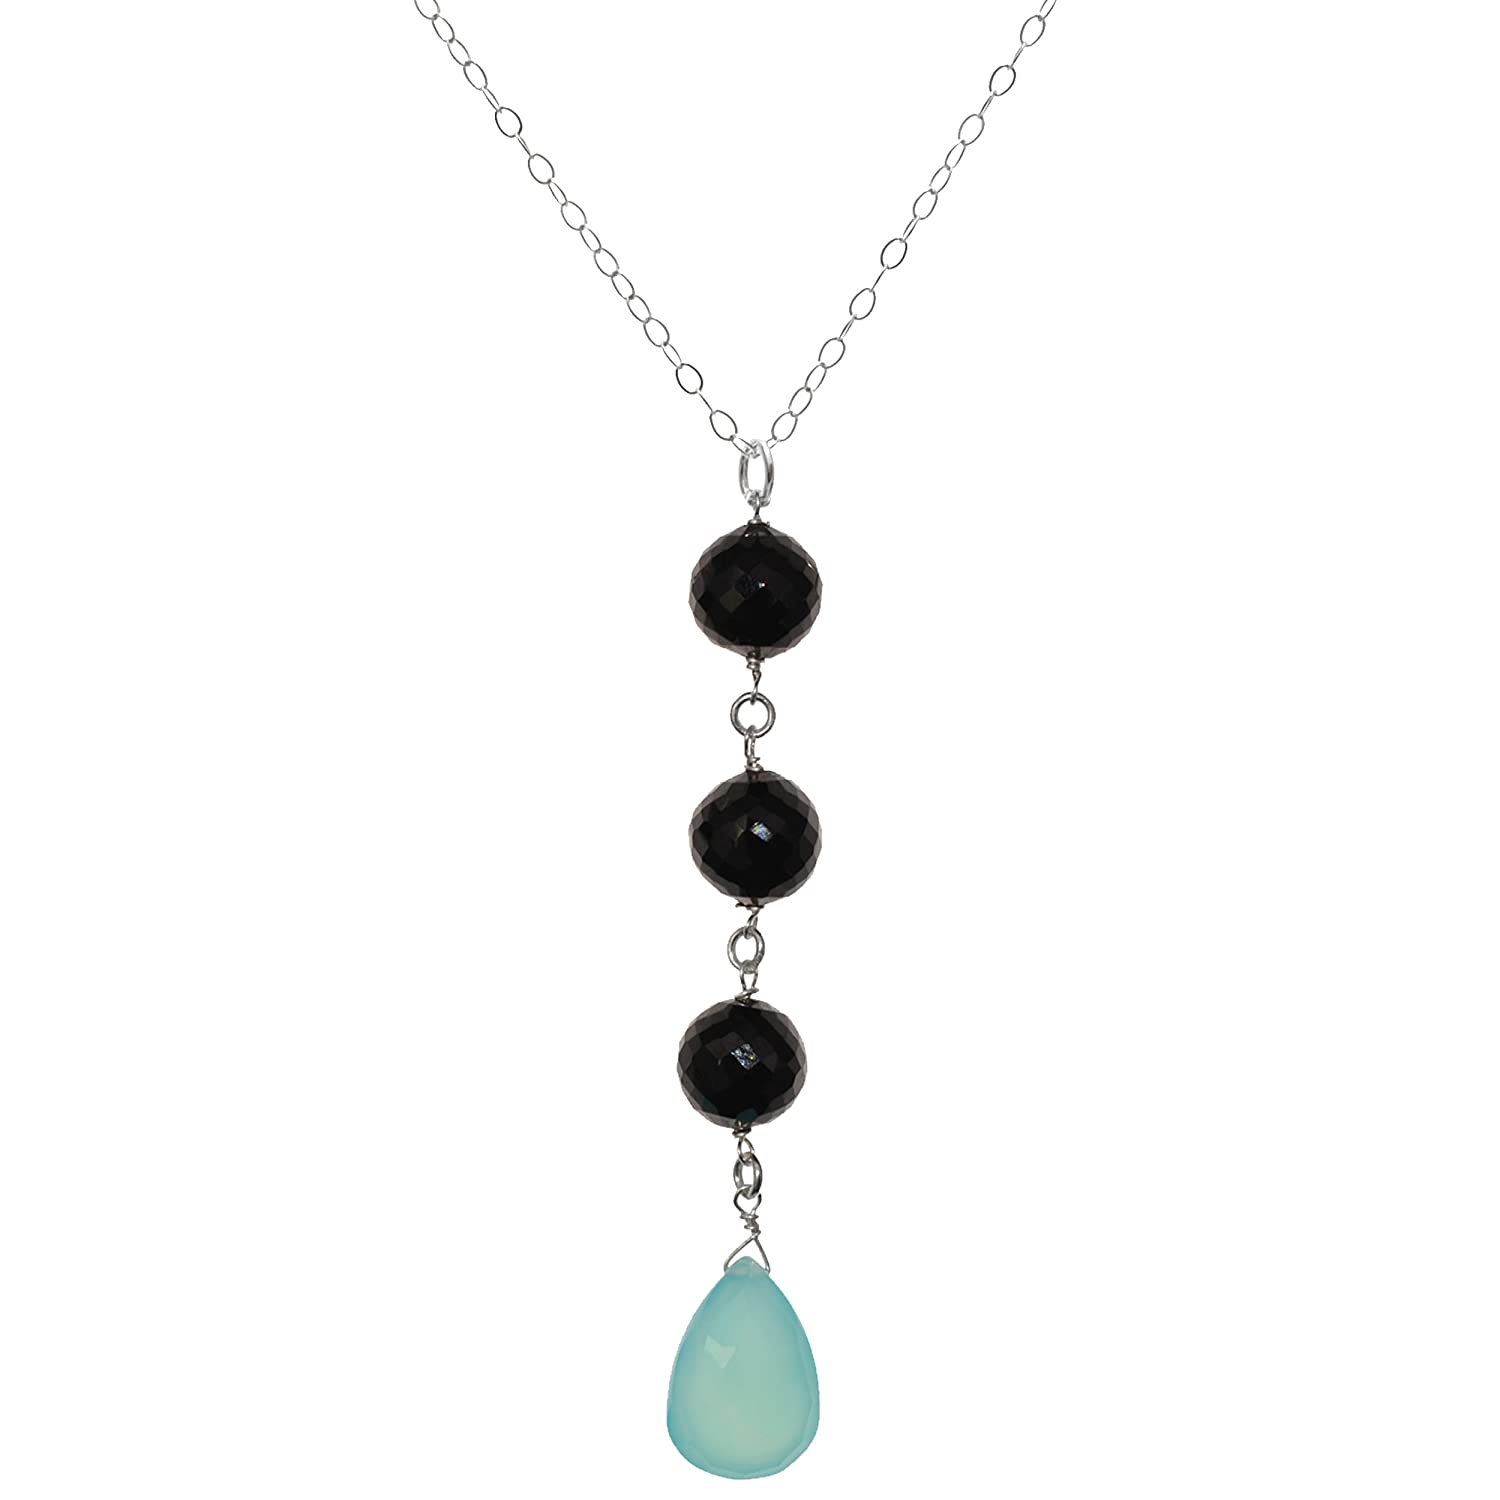 b8c2b6d0c Amazon.com: ASHANTI Aqua Blue Chalcedony and Black Spinel Natural Gemstone  Sterling Silver Handmade 18 inch Necklace: Pendant Necklaces: Jewelry